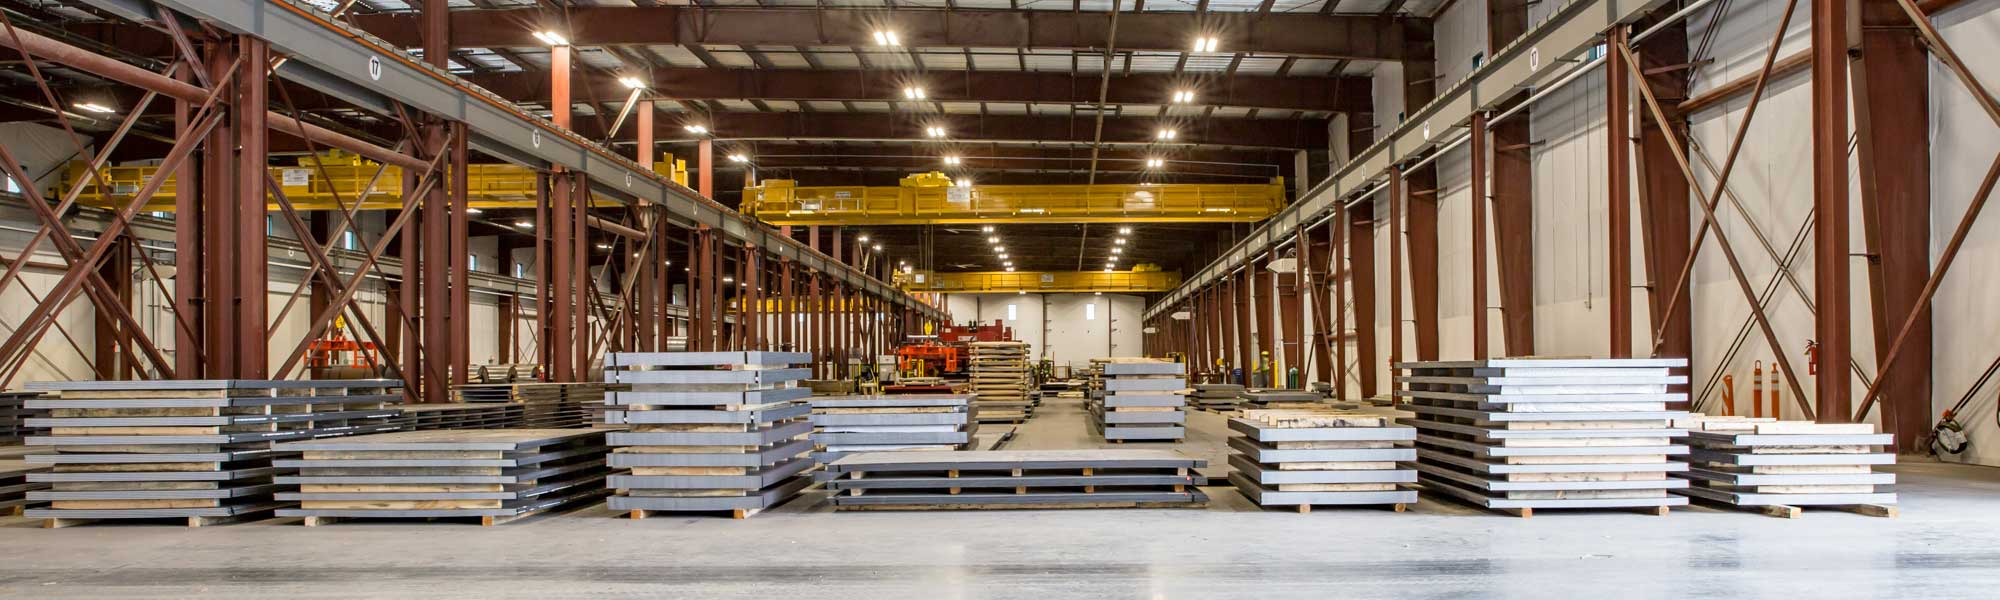 flat steel in a warehouse